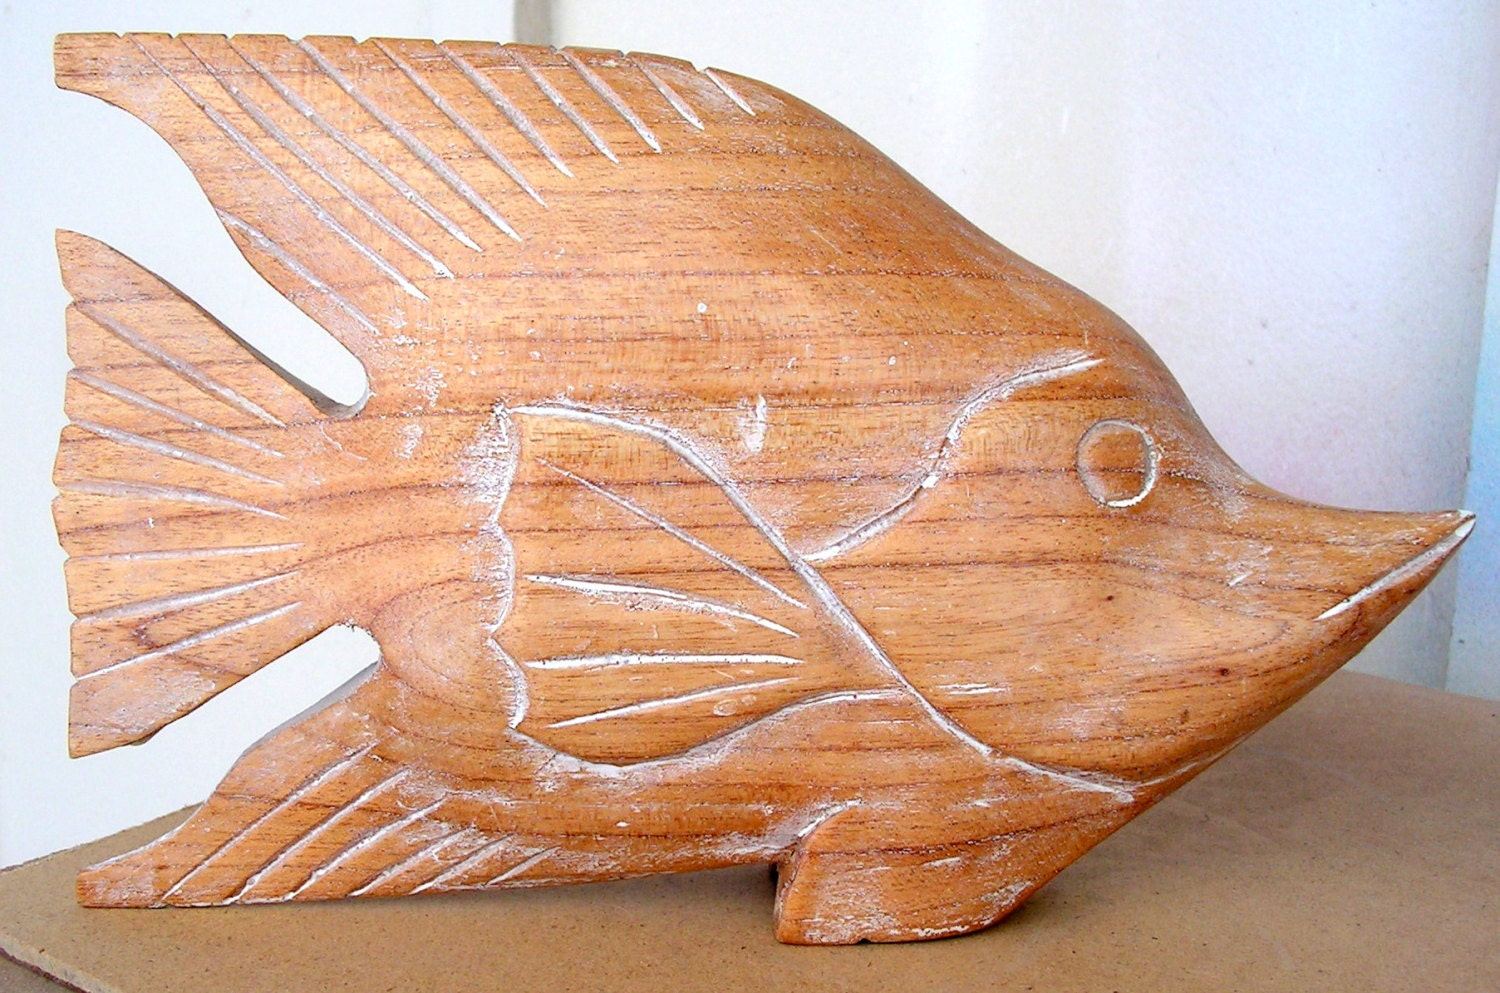 Vintage carved wooden fish decoy folk art wood carving